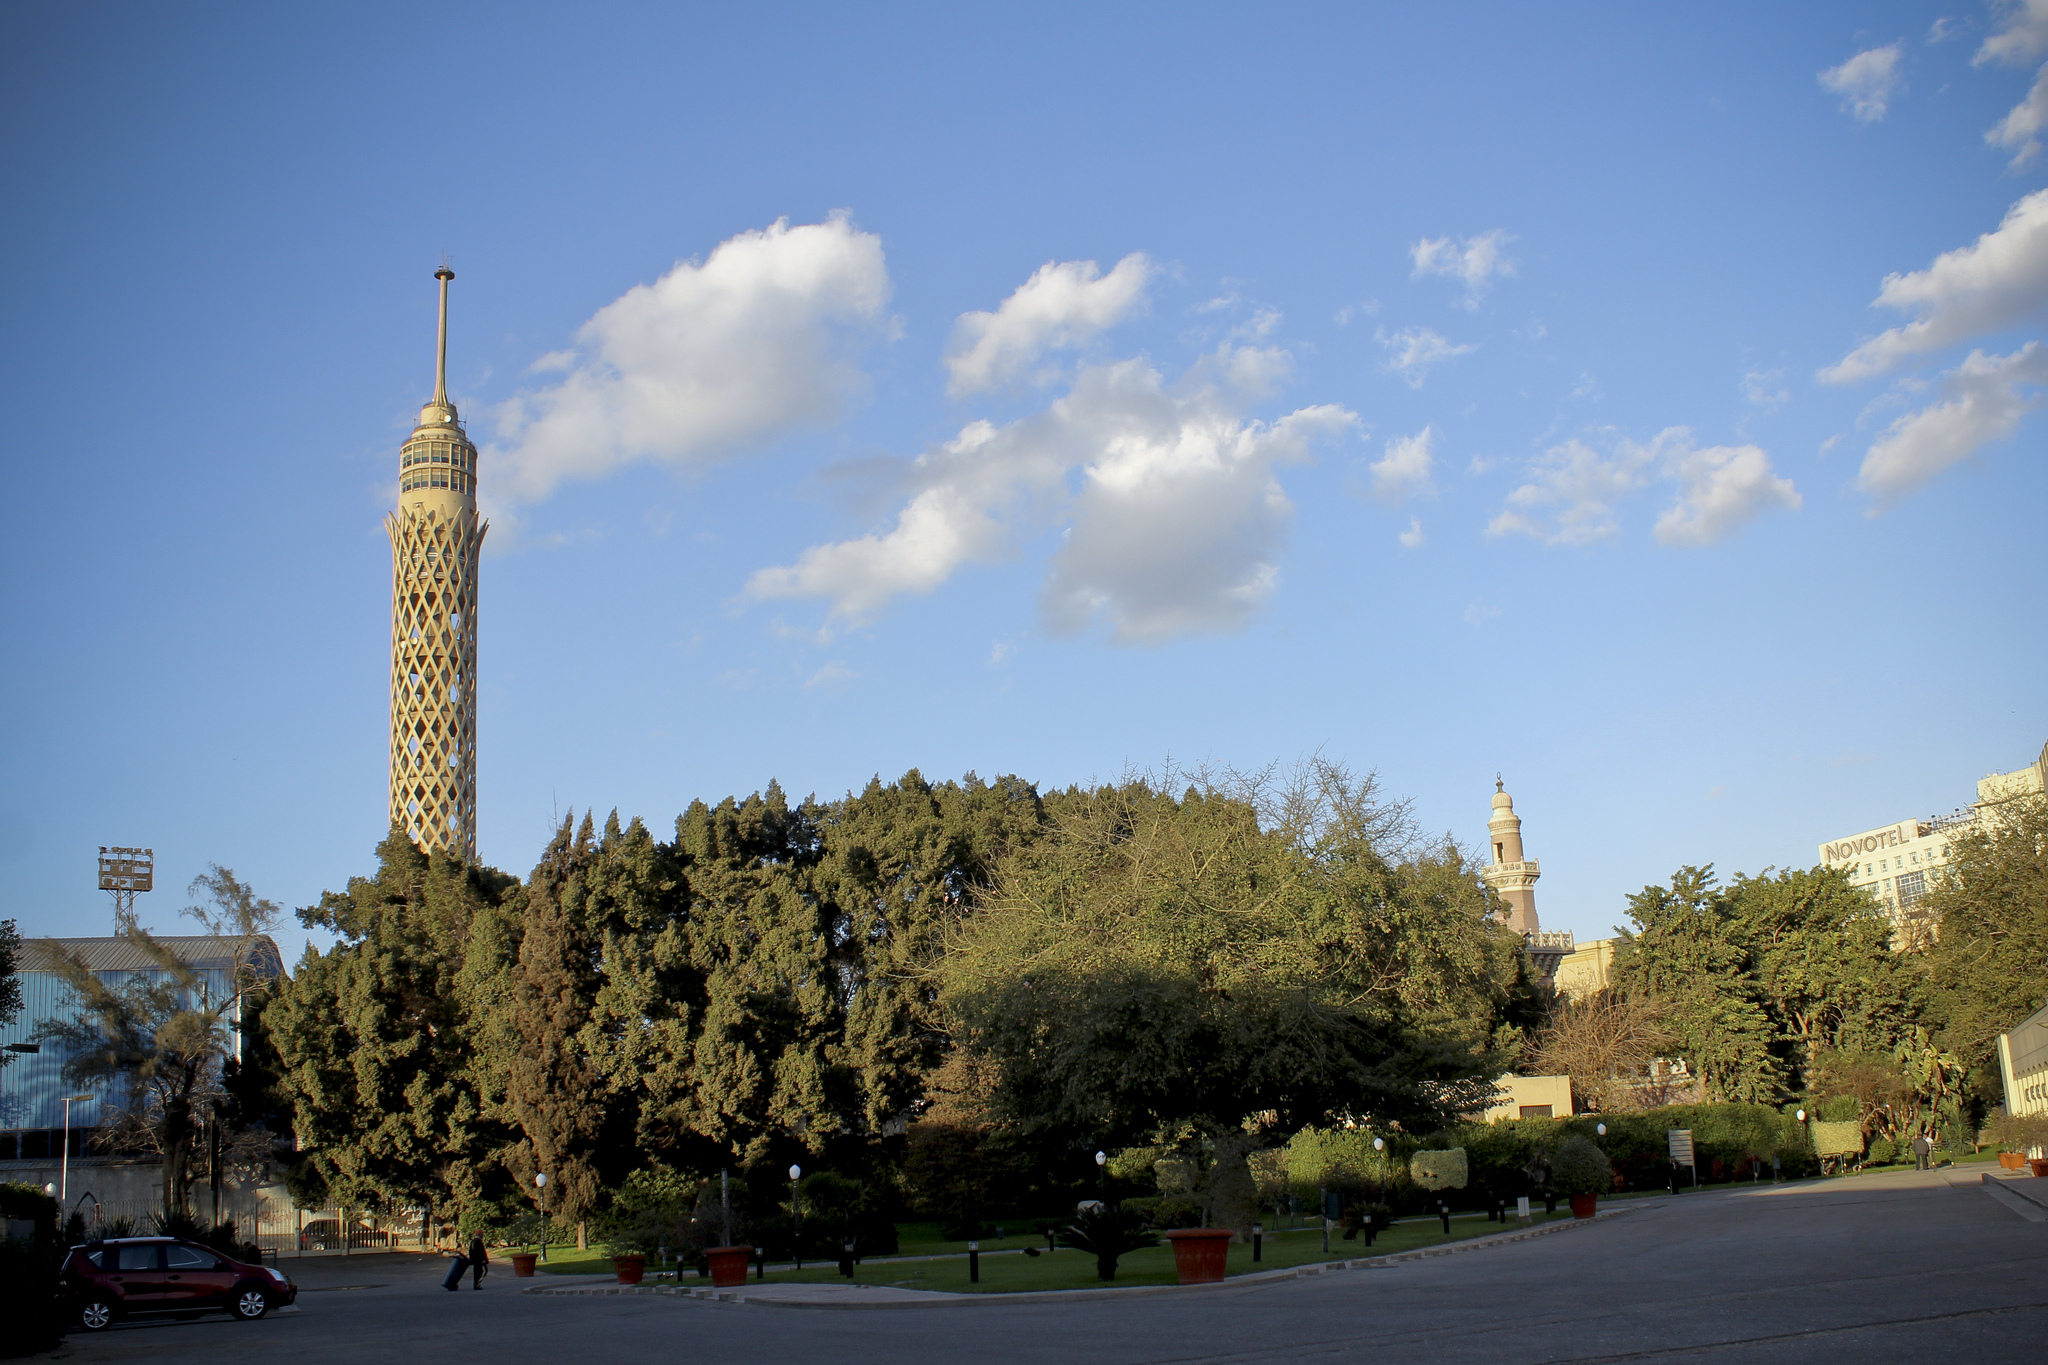 Cairo Tower (in Zamalek) © Gigi Ibrahim/Flickr